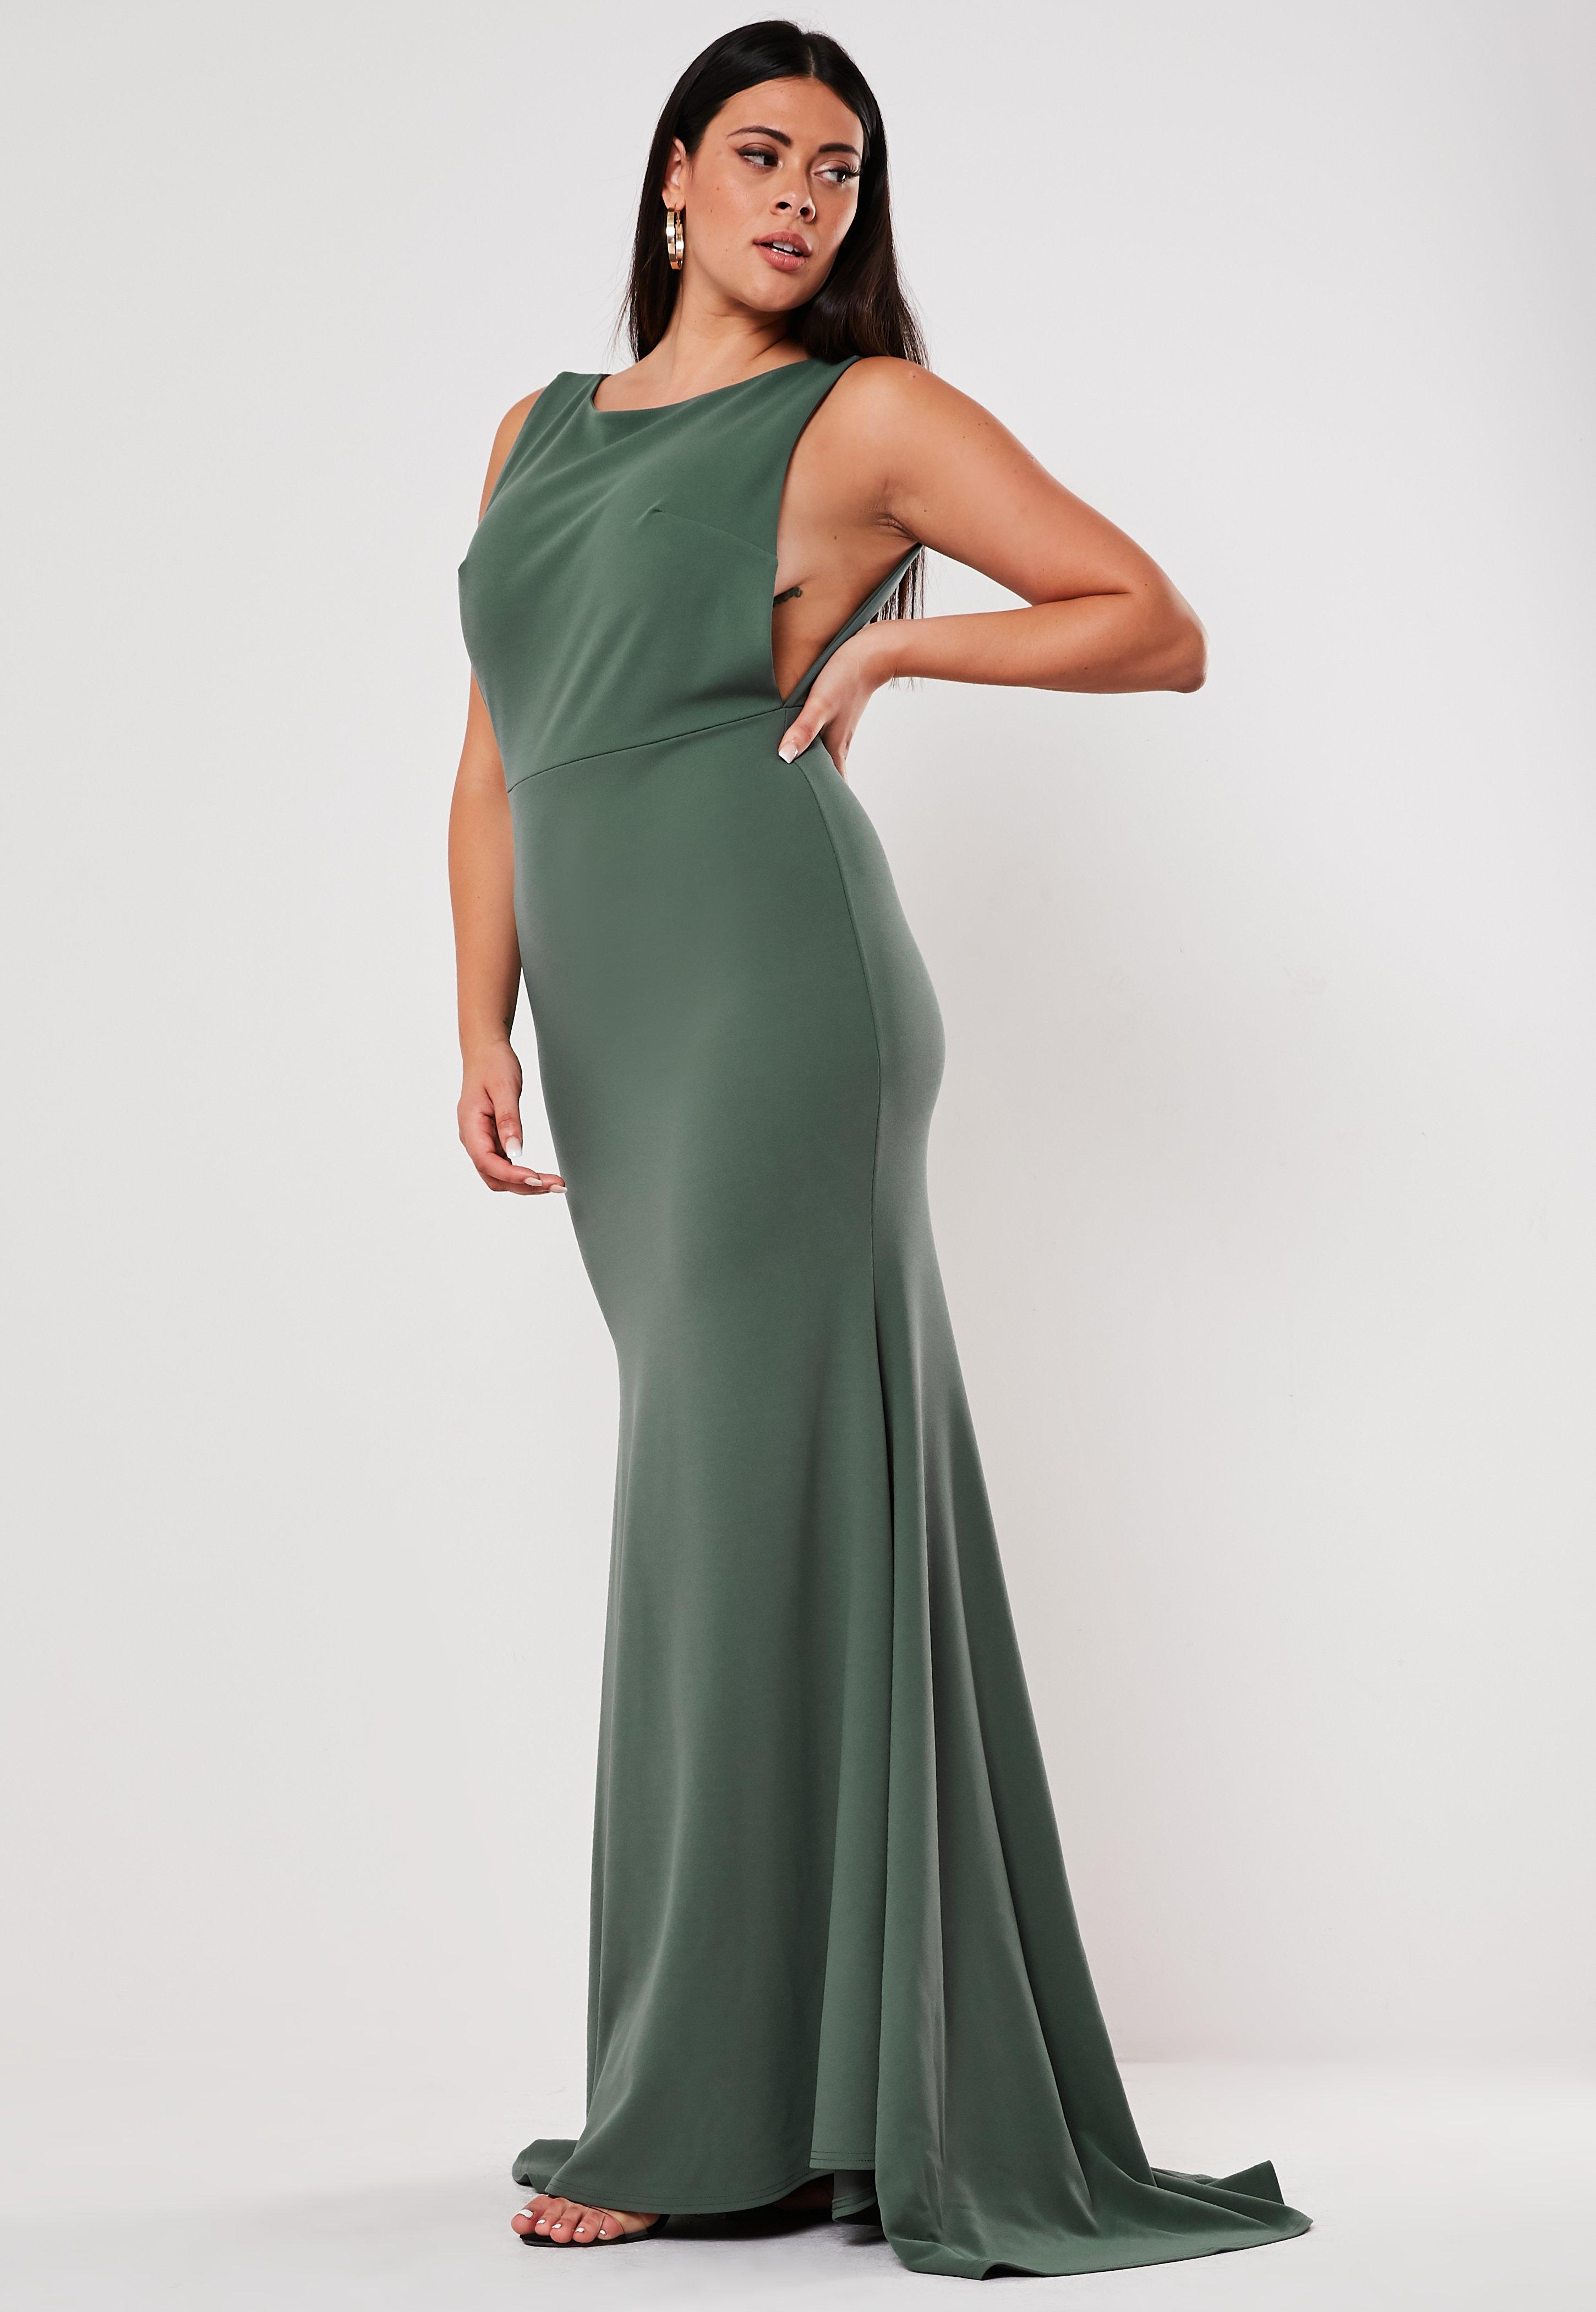 Plus Size Bridesmaid Green Sleeveless Low Back Maxi Dress